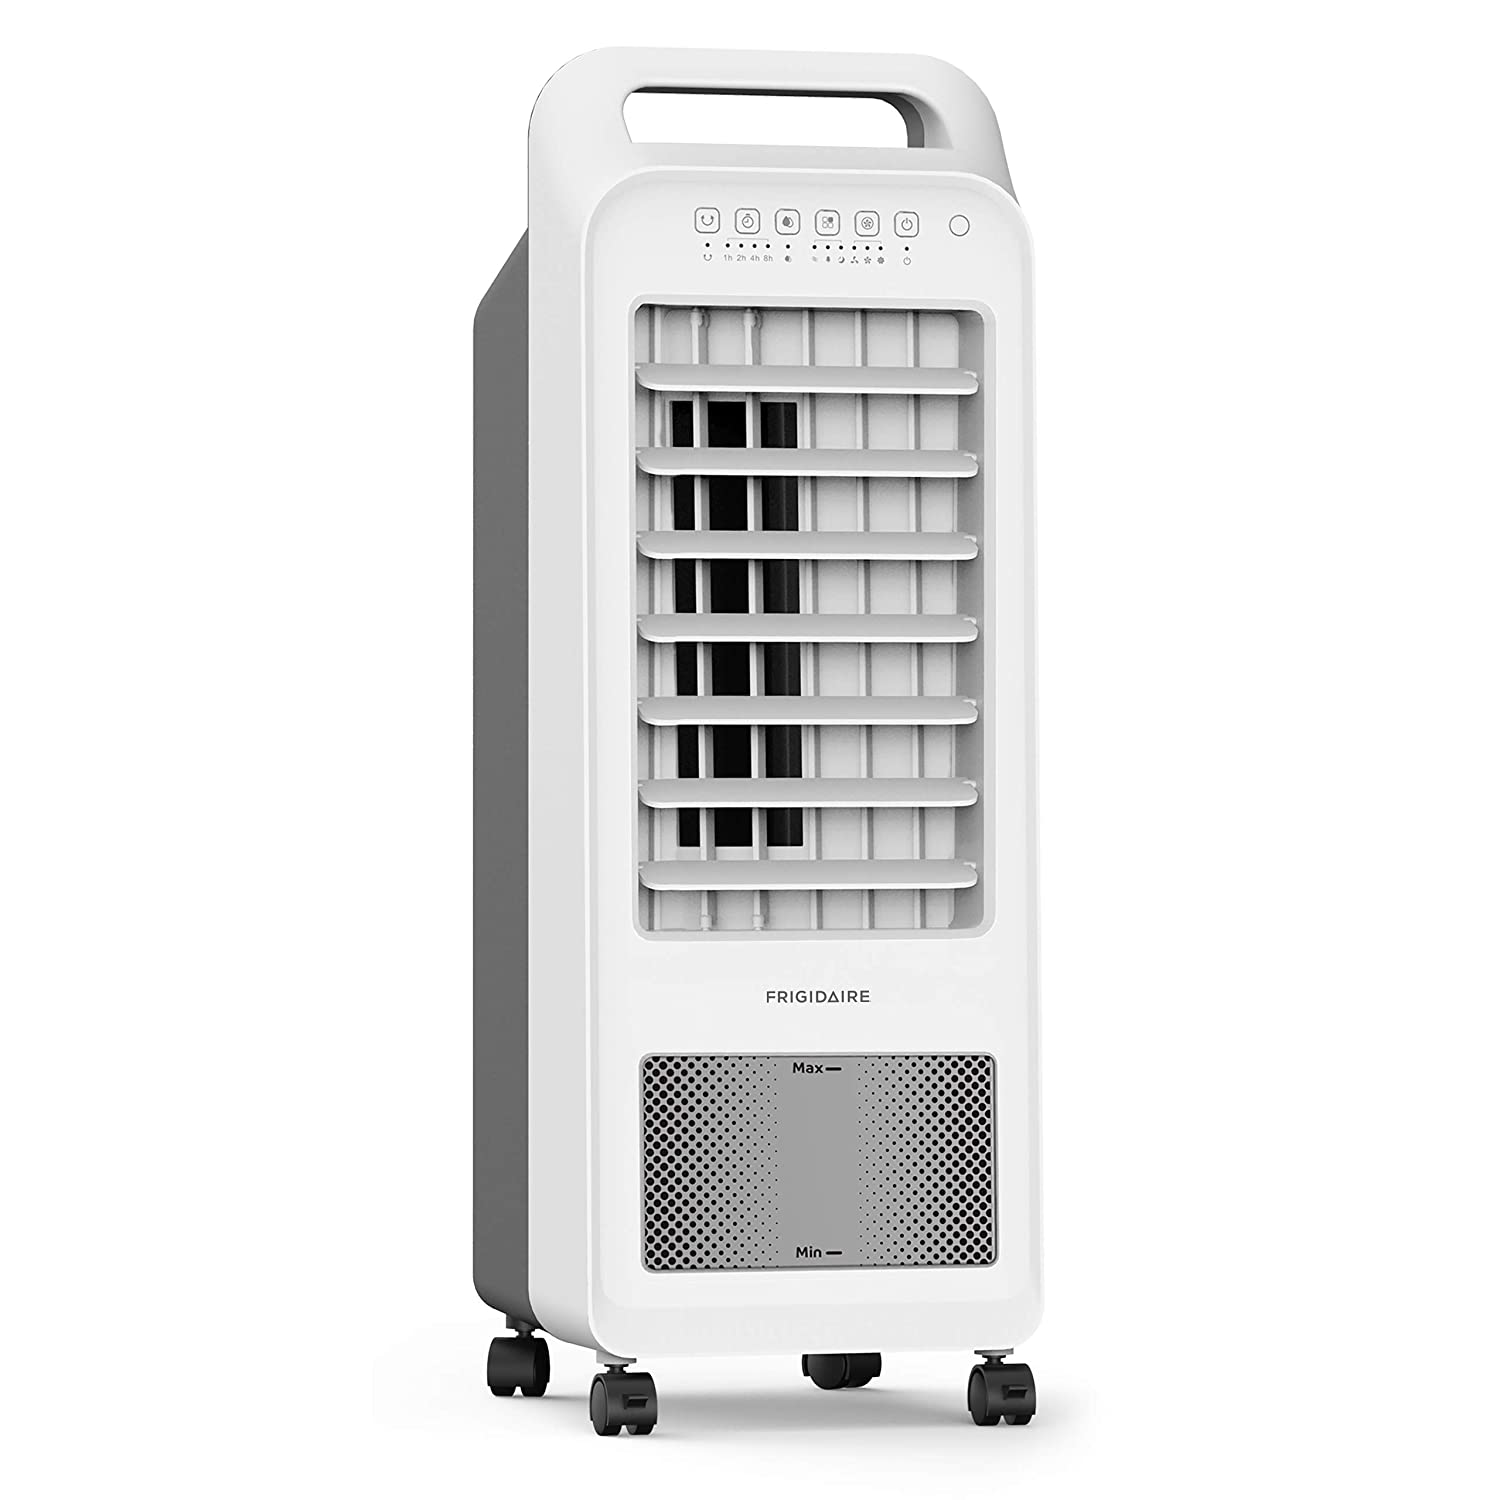 FRIGIDAIRE Fan Cooler and Humidifier with 1.5 Gallon Tank, Remote Included, 2-in-1 Compact Design, EC100WF, 100 sq ft